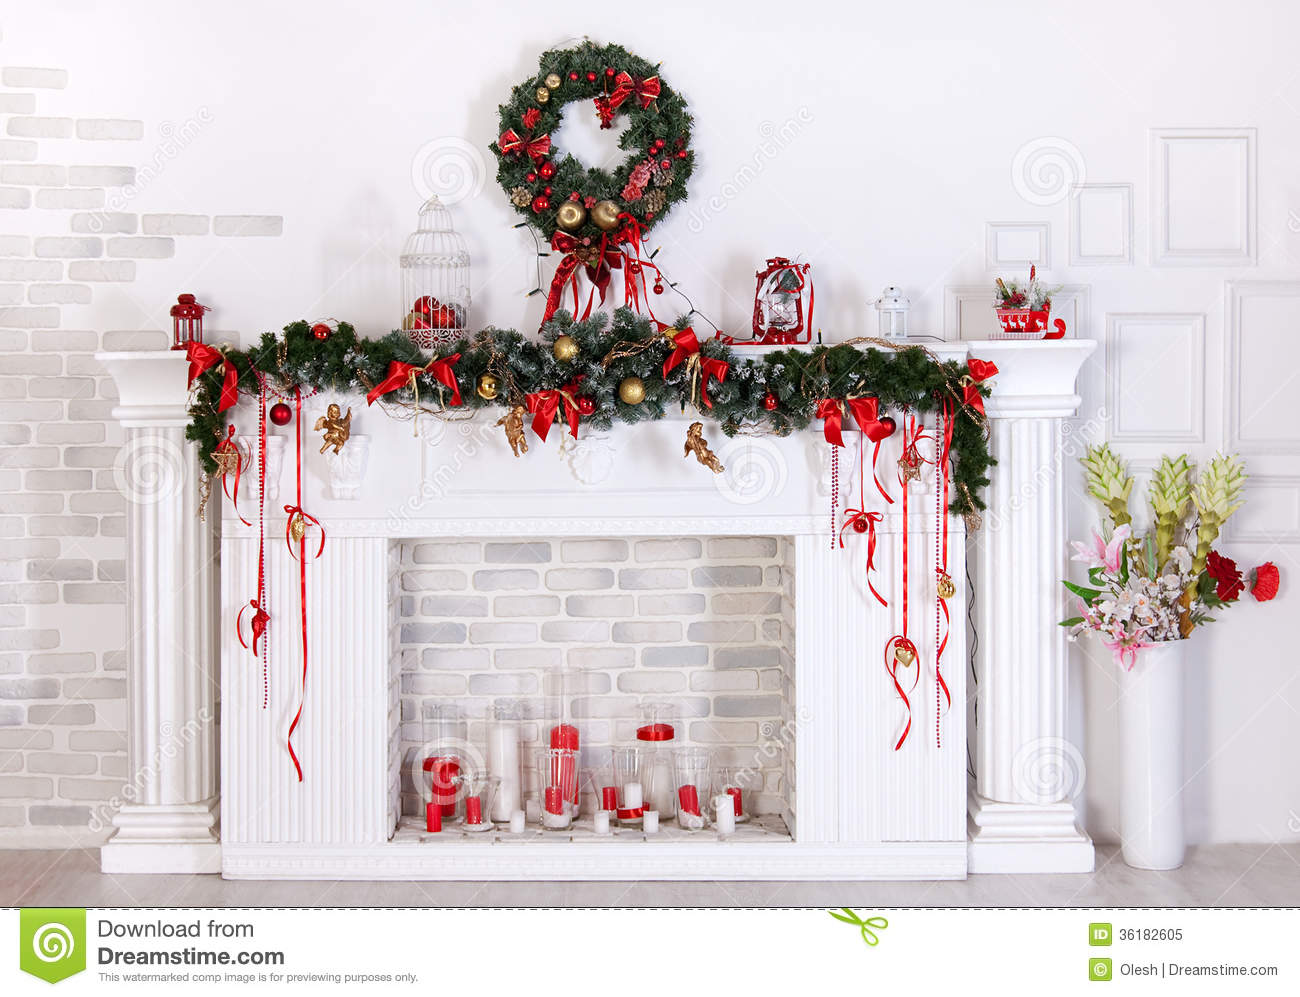 Decorazione di natale con il camino immagine stock for Decorazione be u